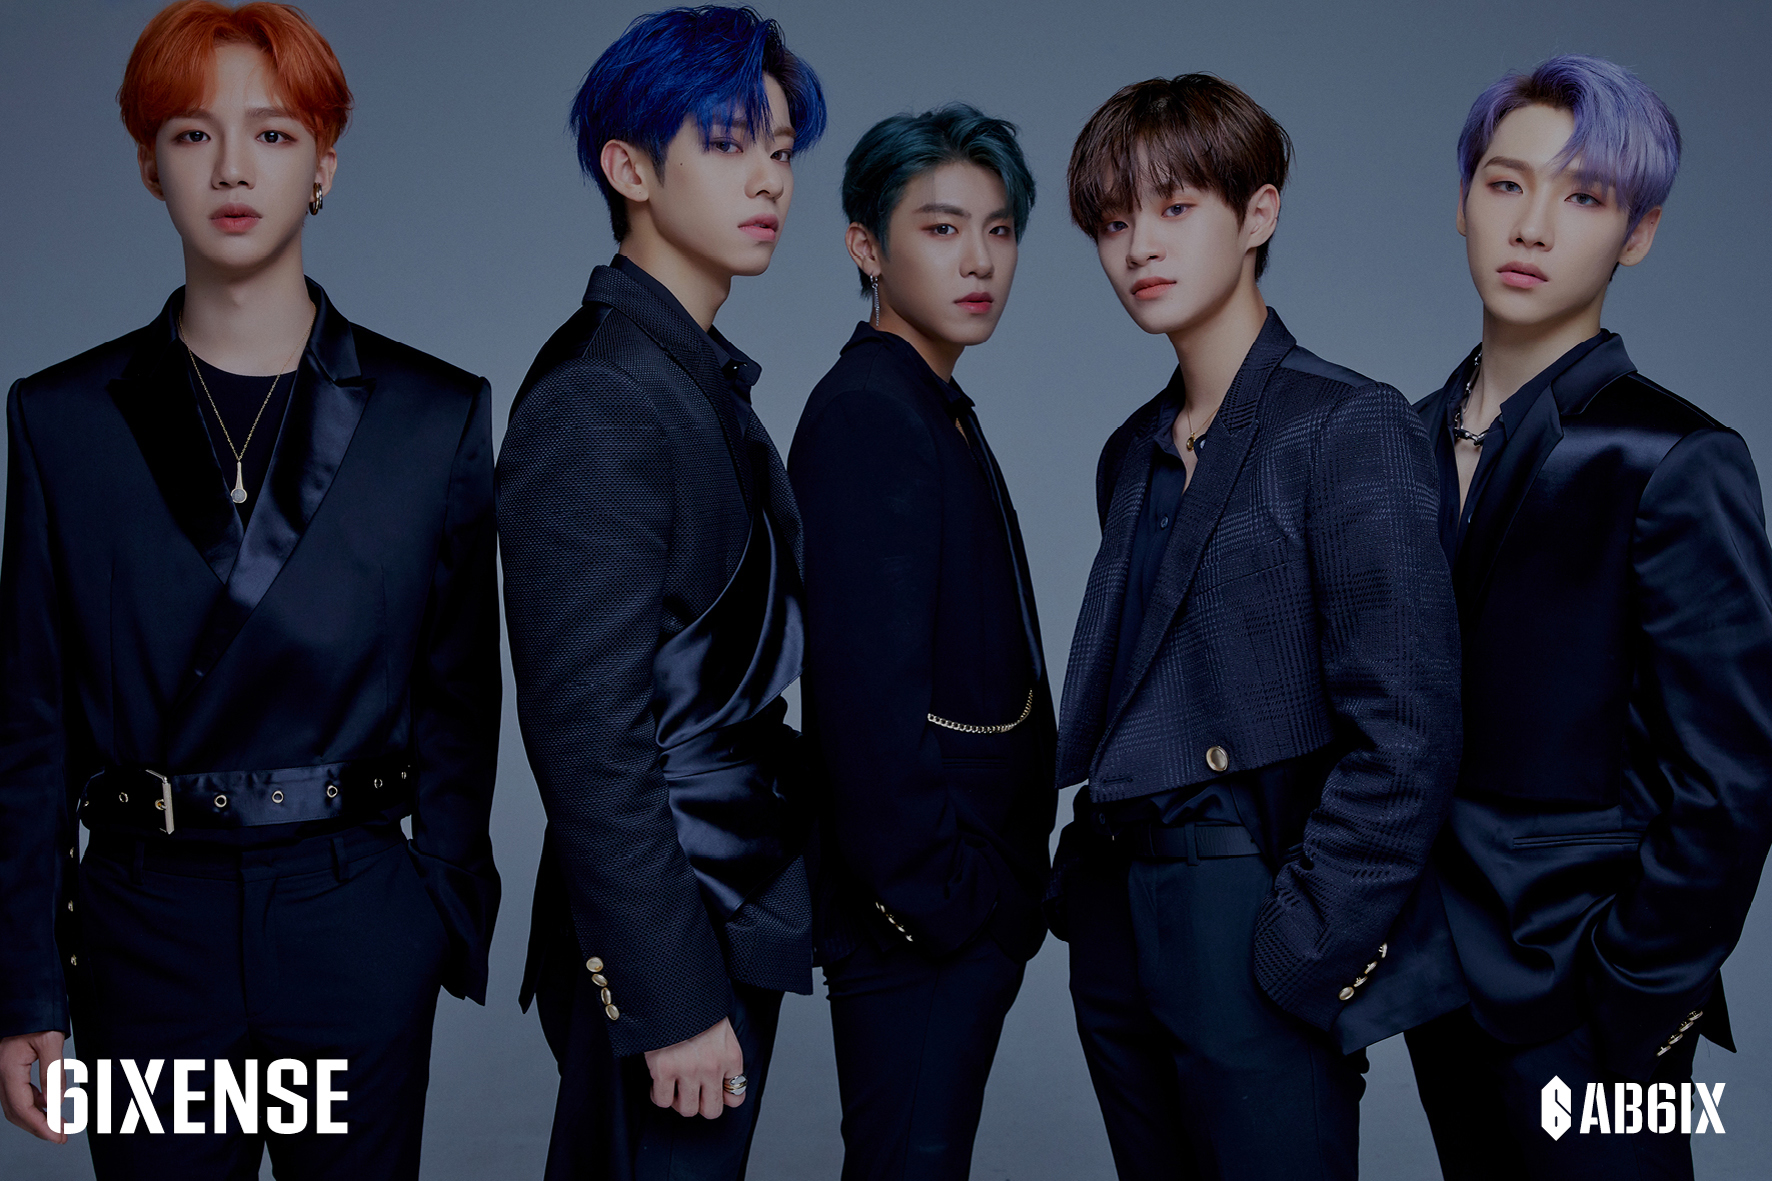 Group AB6IX who came back with the new album, '6IXENSE,' on October 7th (Photo Credit=Brand New Music)